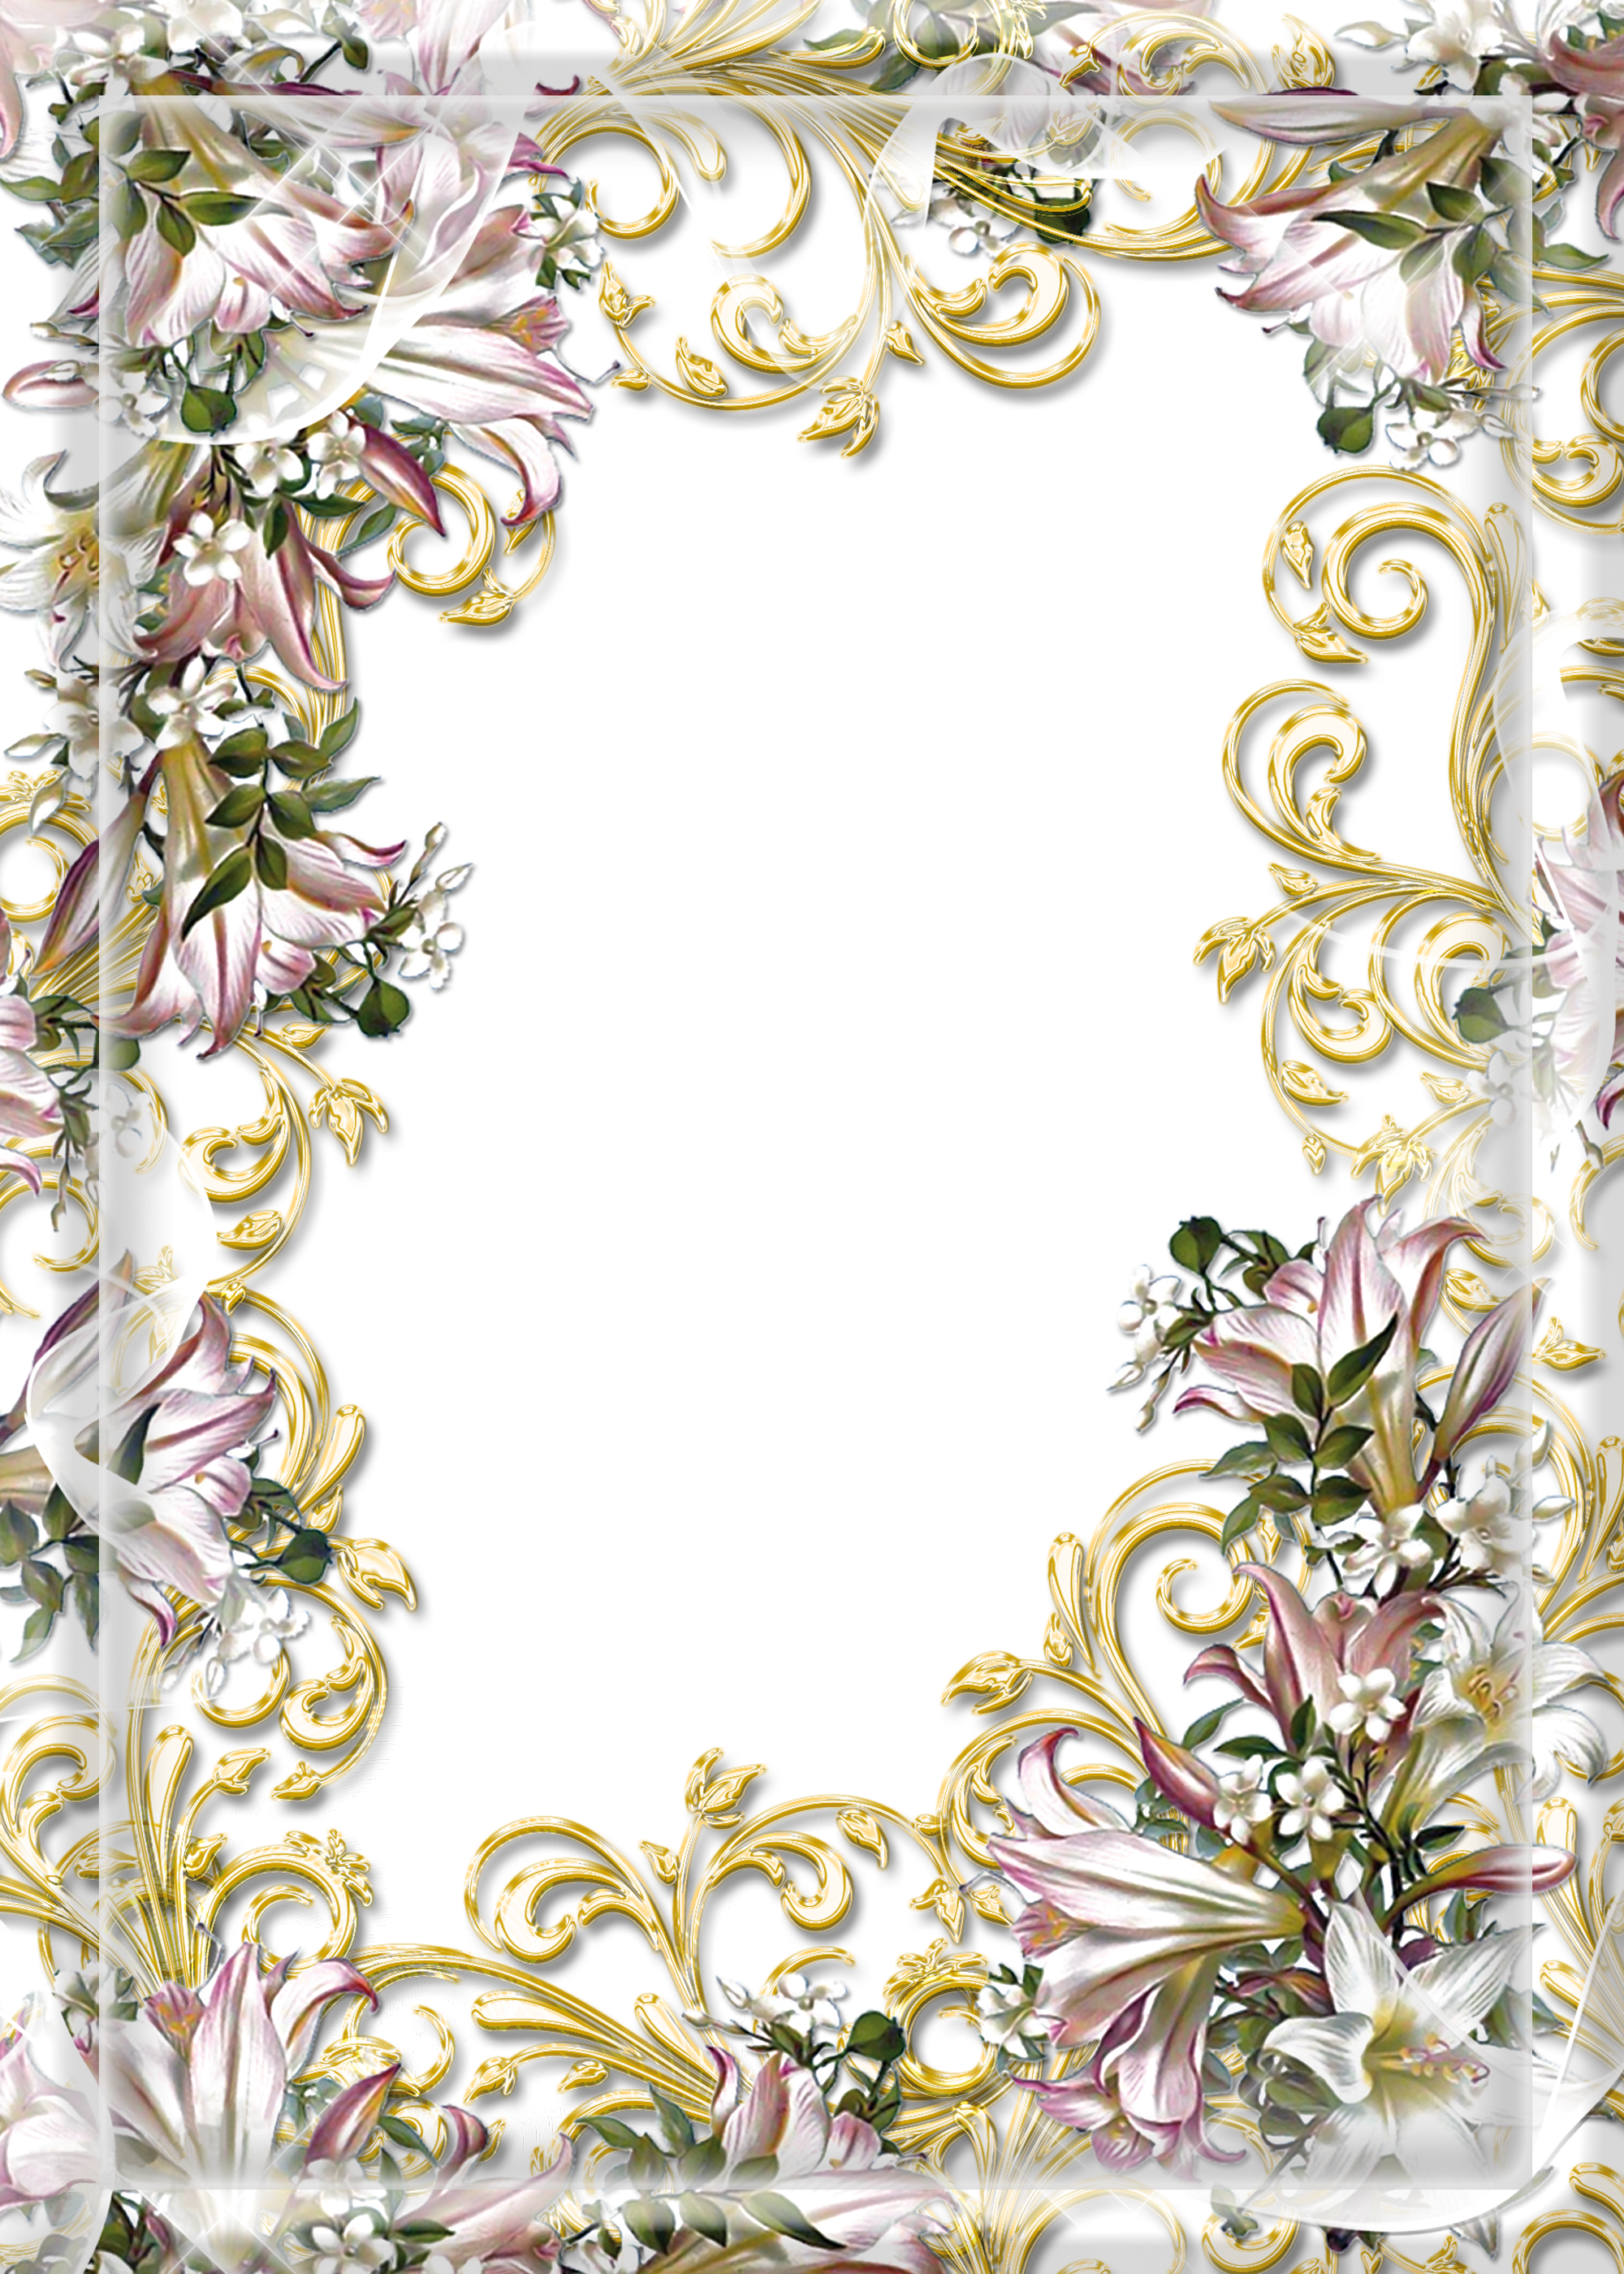 Transparent PNG Photo Frame with Flowers Flower frame